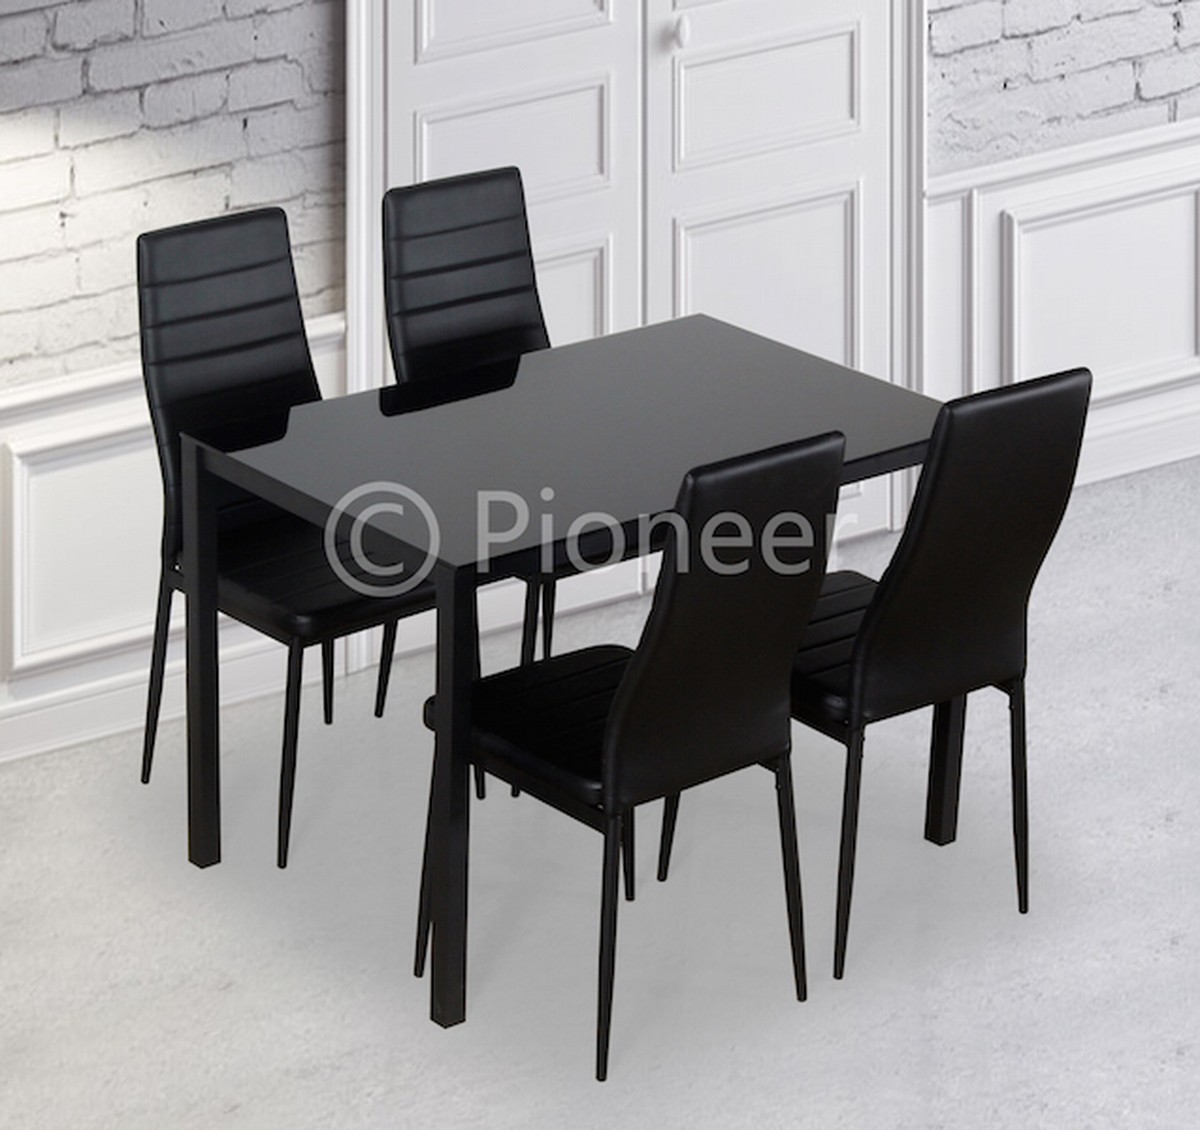 Dining Table With 4 Or 6 Chairs Black For Clearance Prices